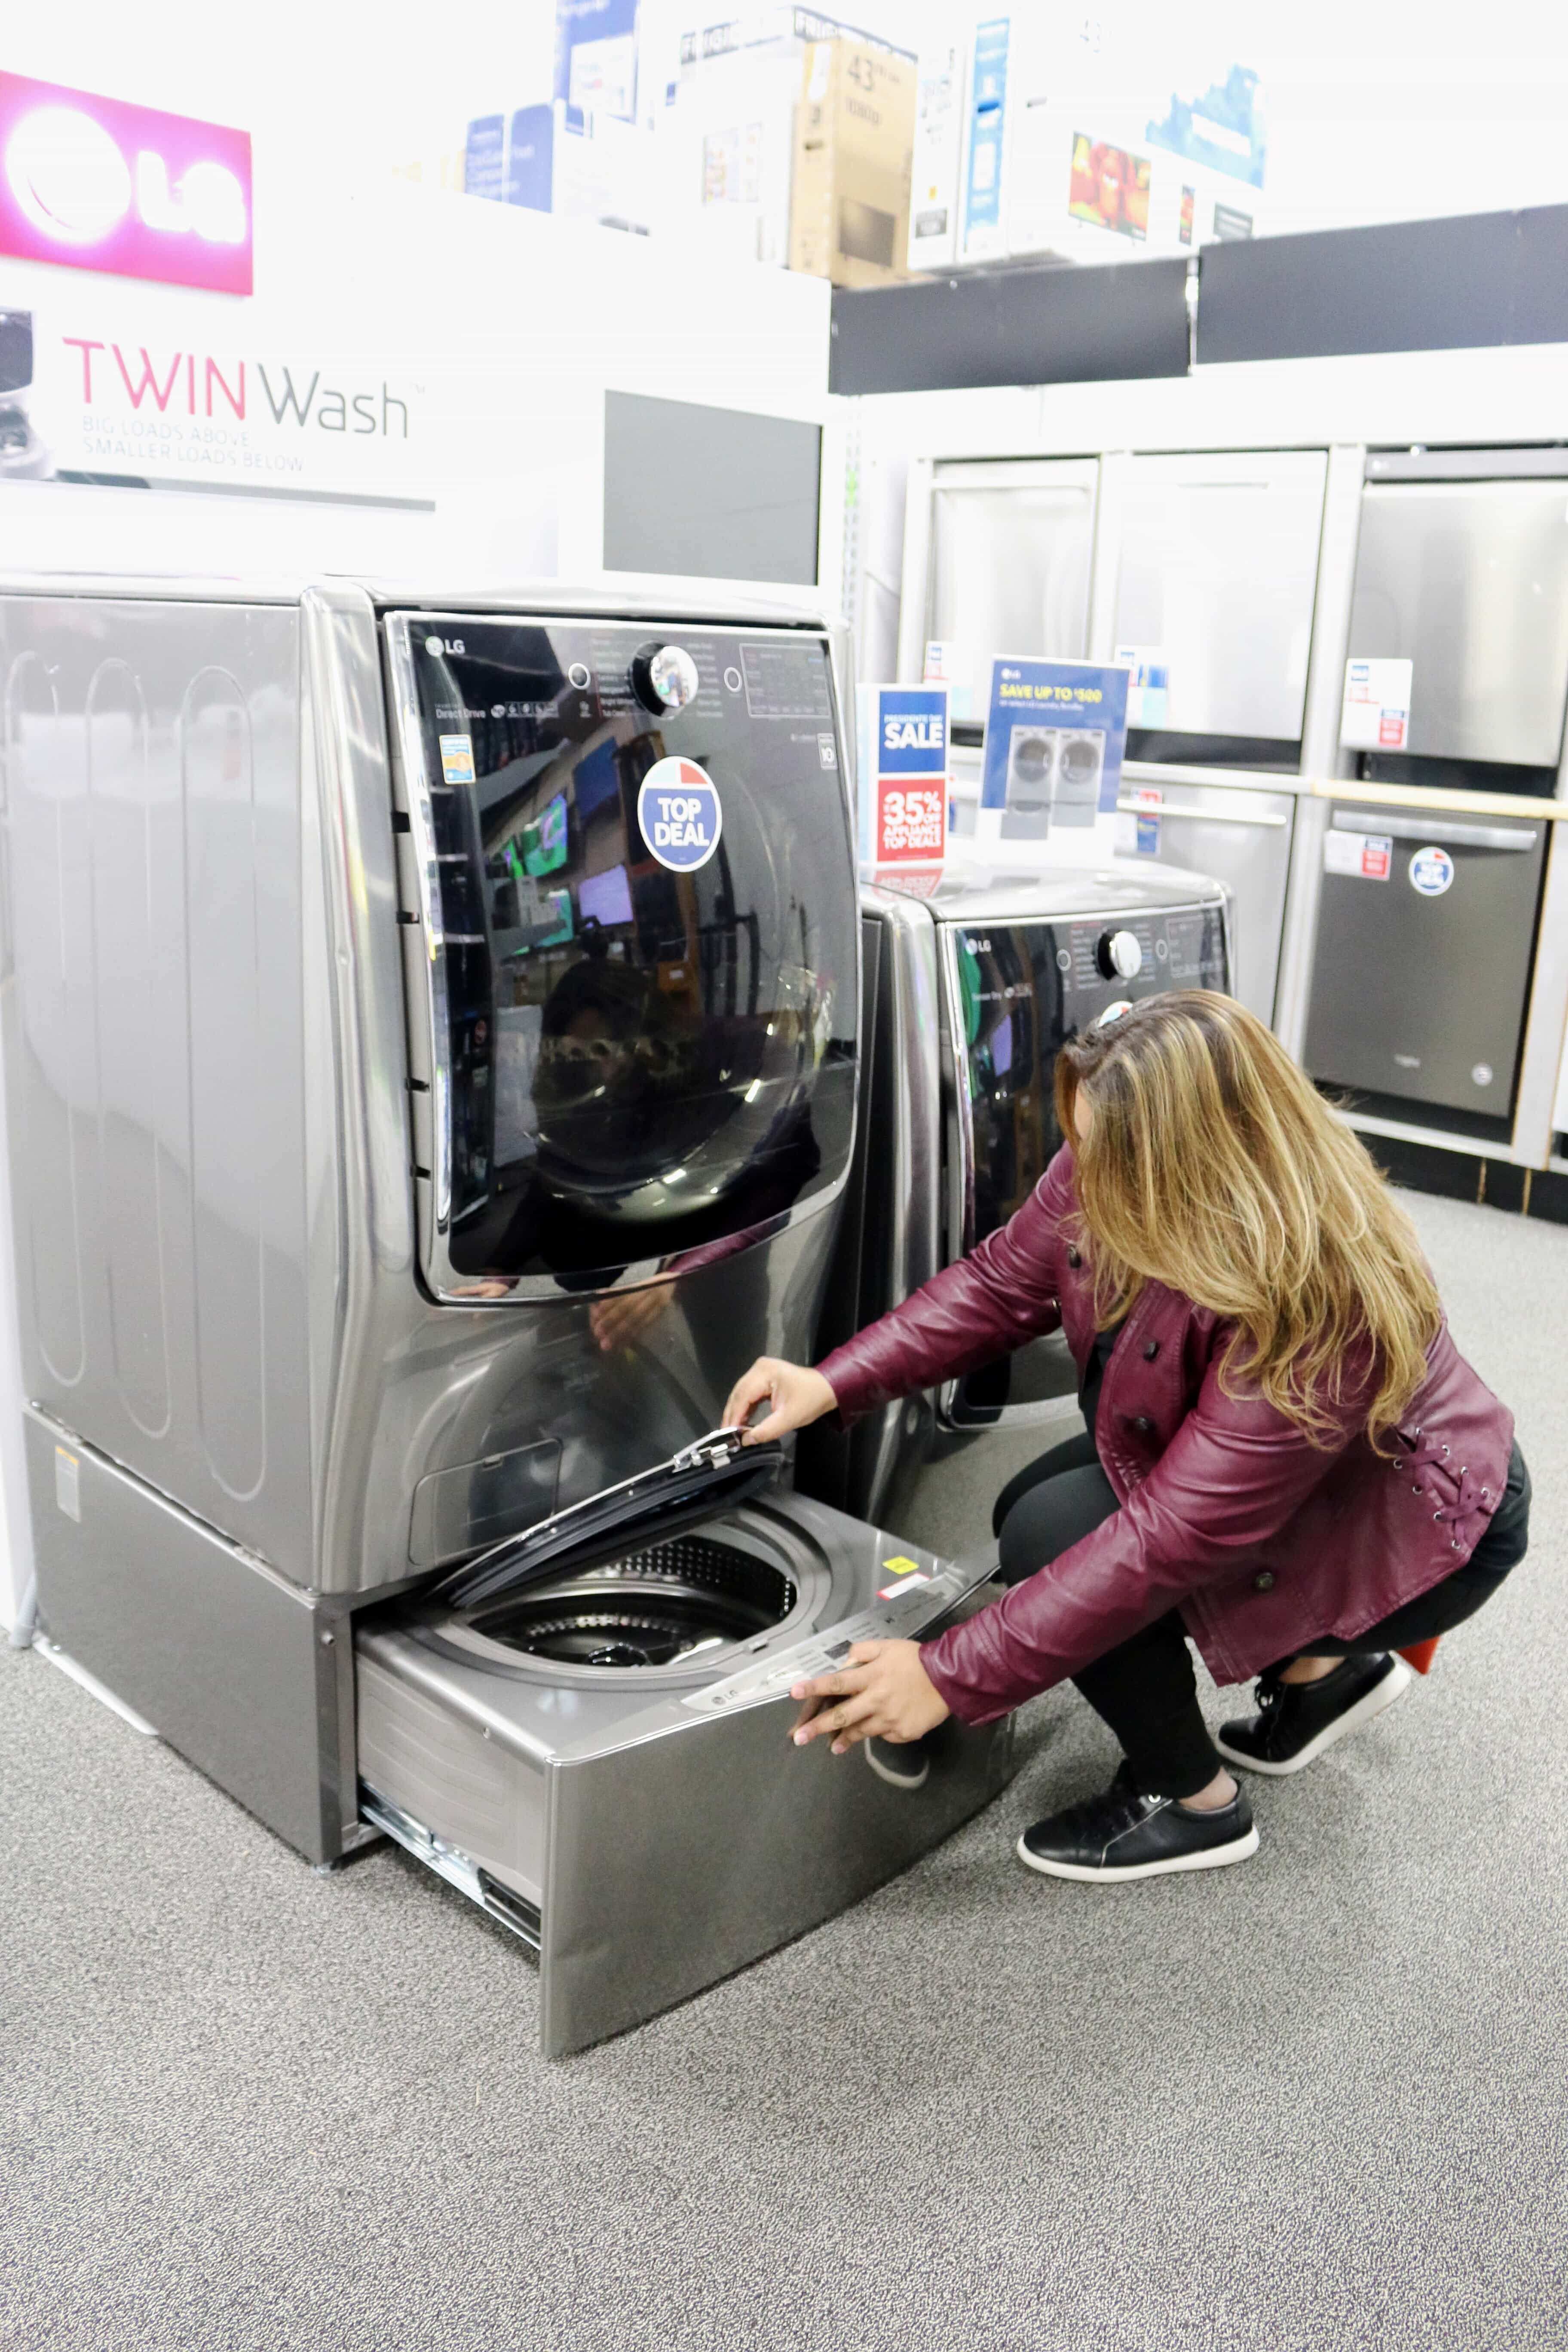 Enlight976 - Wash, Dry, and Refresh with LG Twin Wash System at Best Buy